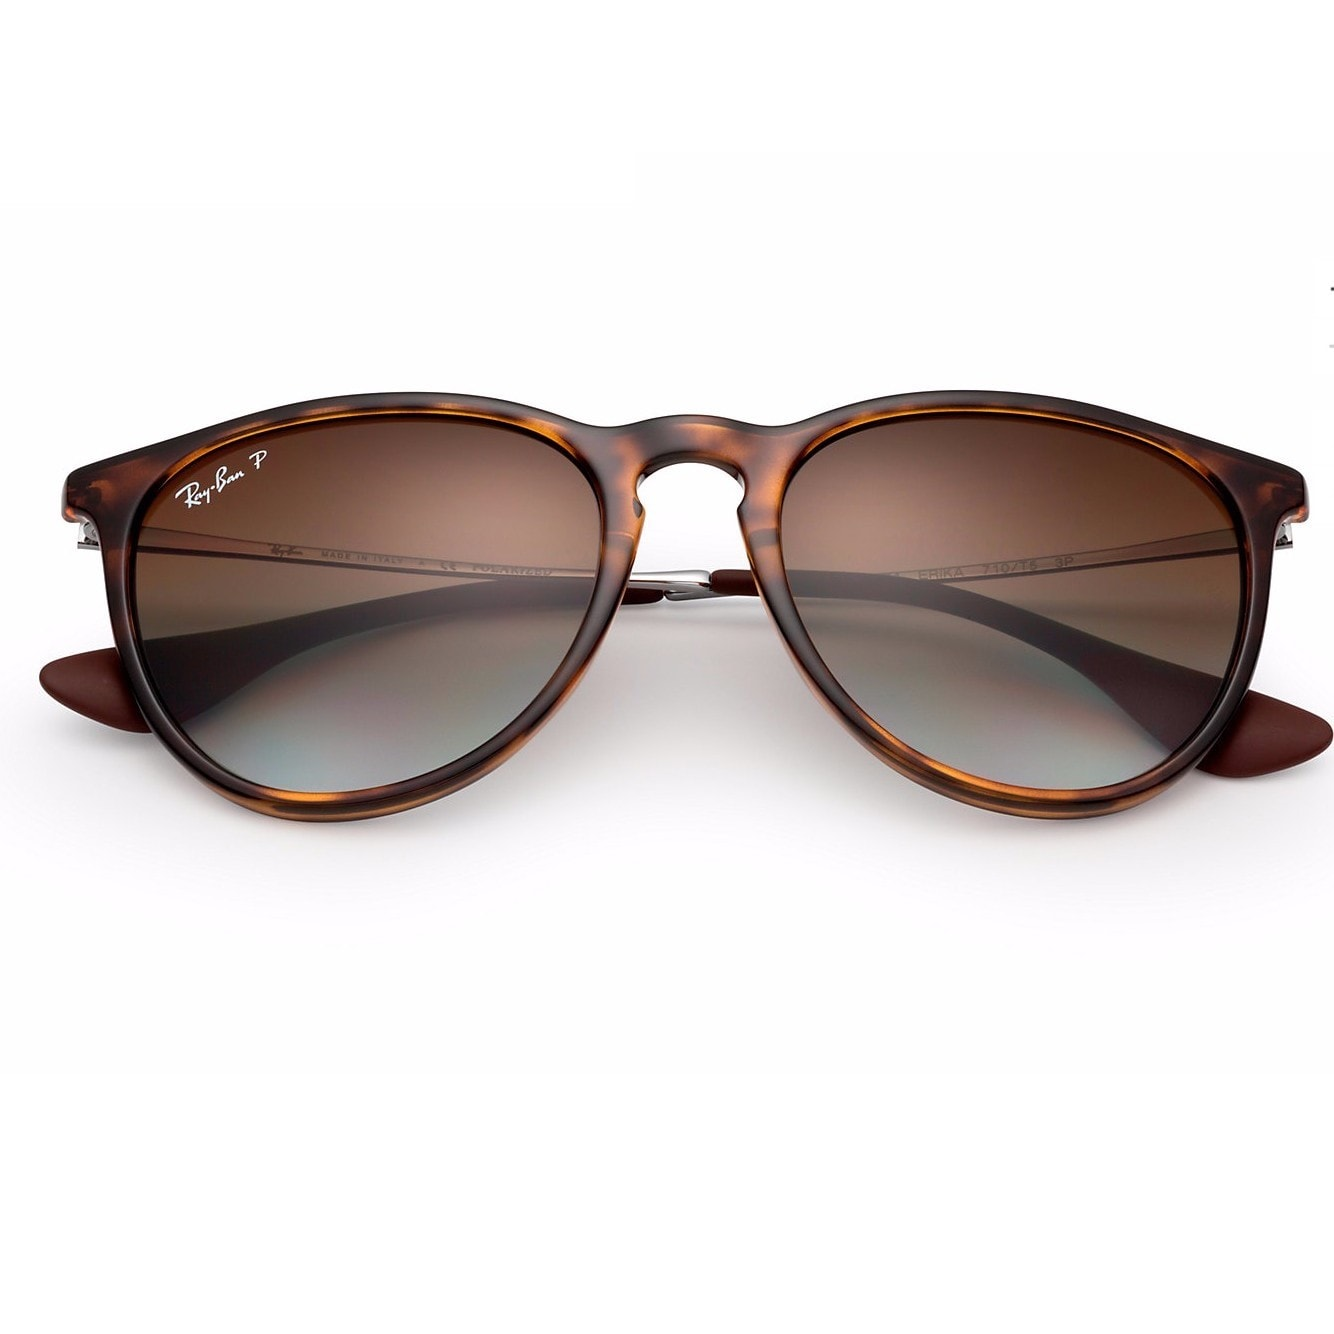 0a8724e857b2 Shop Ray-Ban RB4171 710 T5 Erika Classic Tortoise Frmae Polarized Brown  Gradient 54mm Lens Sunglasses - Free Shipping Today - Overstock - 14339071